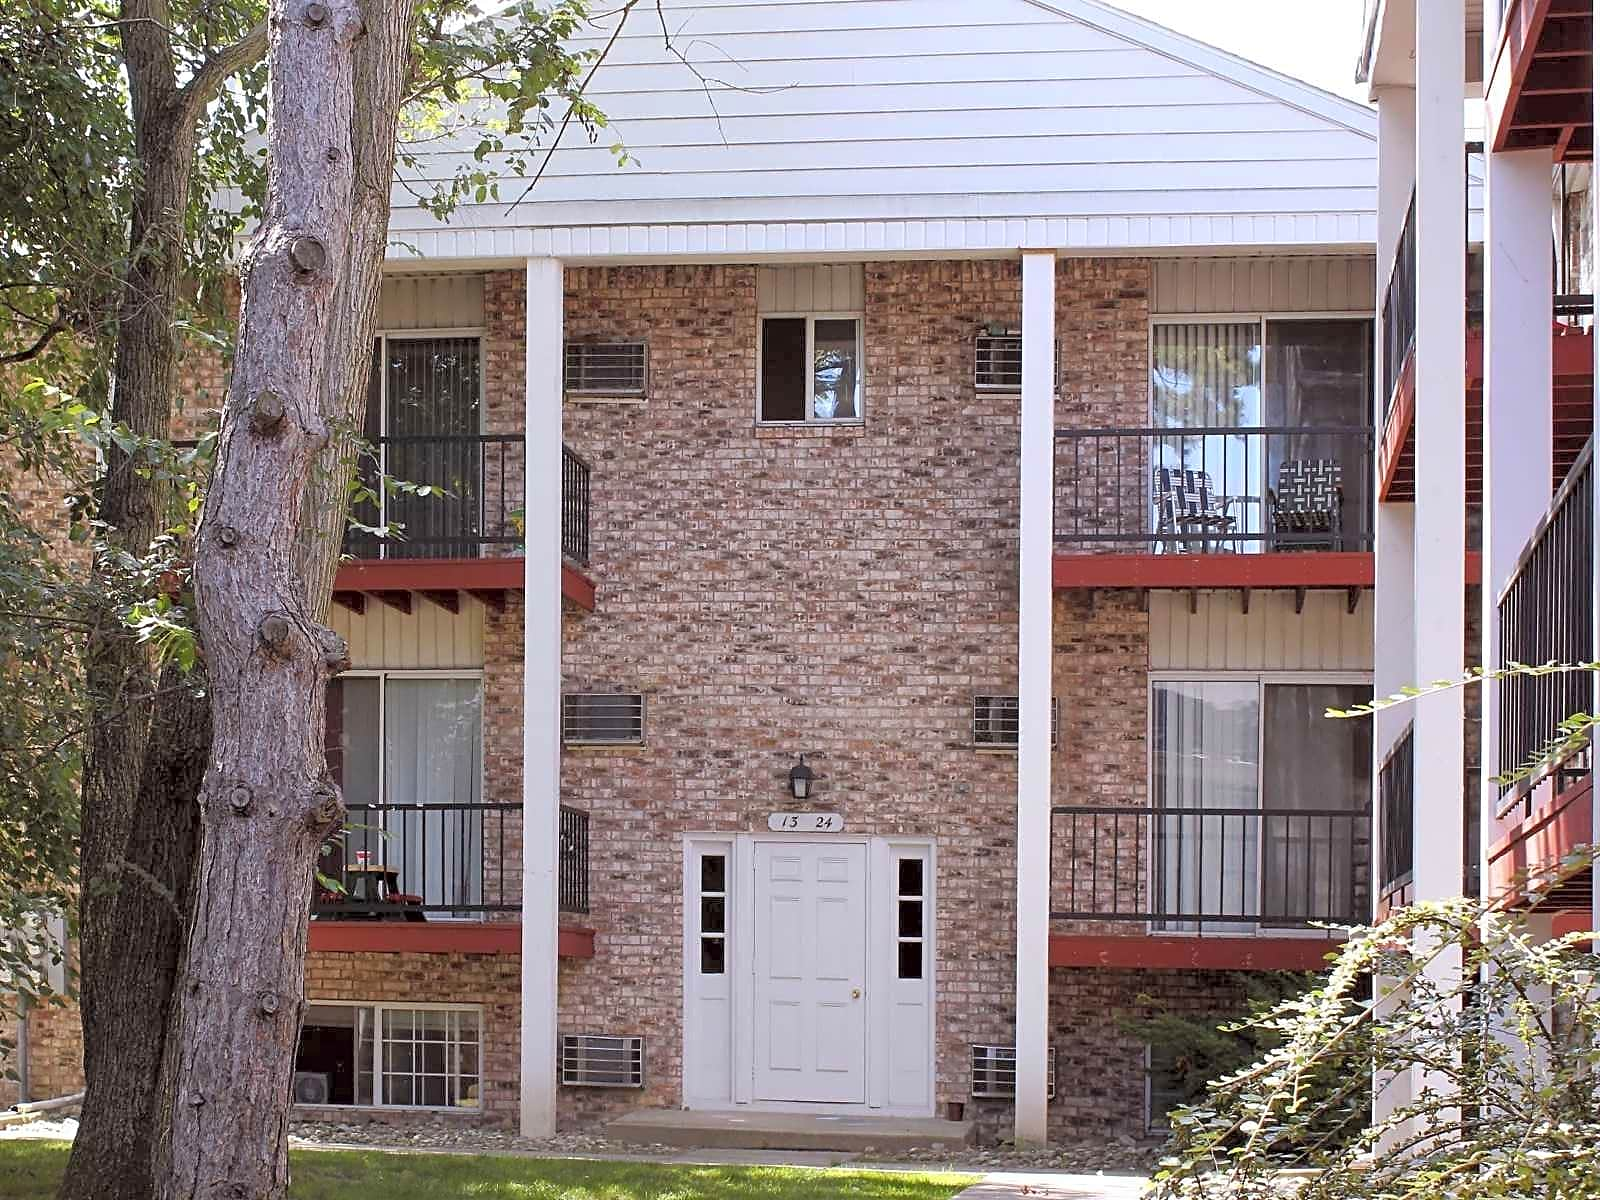 Apartments Near BGSU Oak Hill Apartments for Bowling Green State University Students in Bowling Green, OH